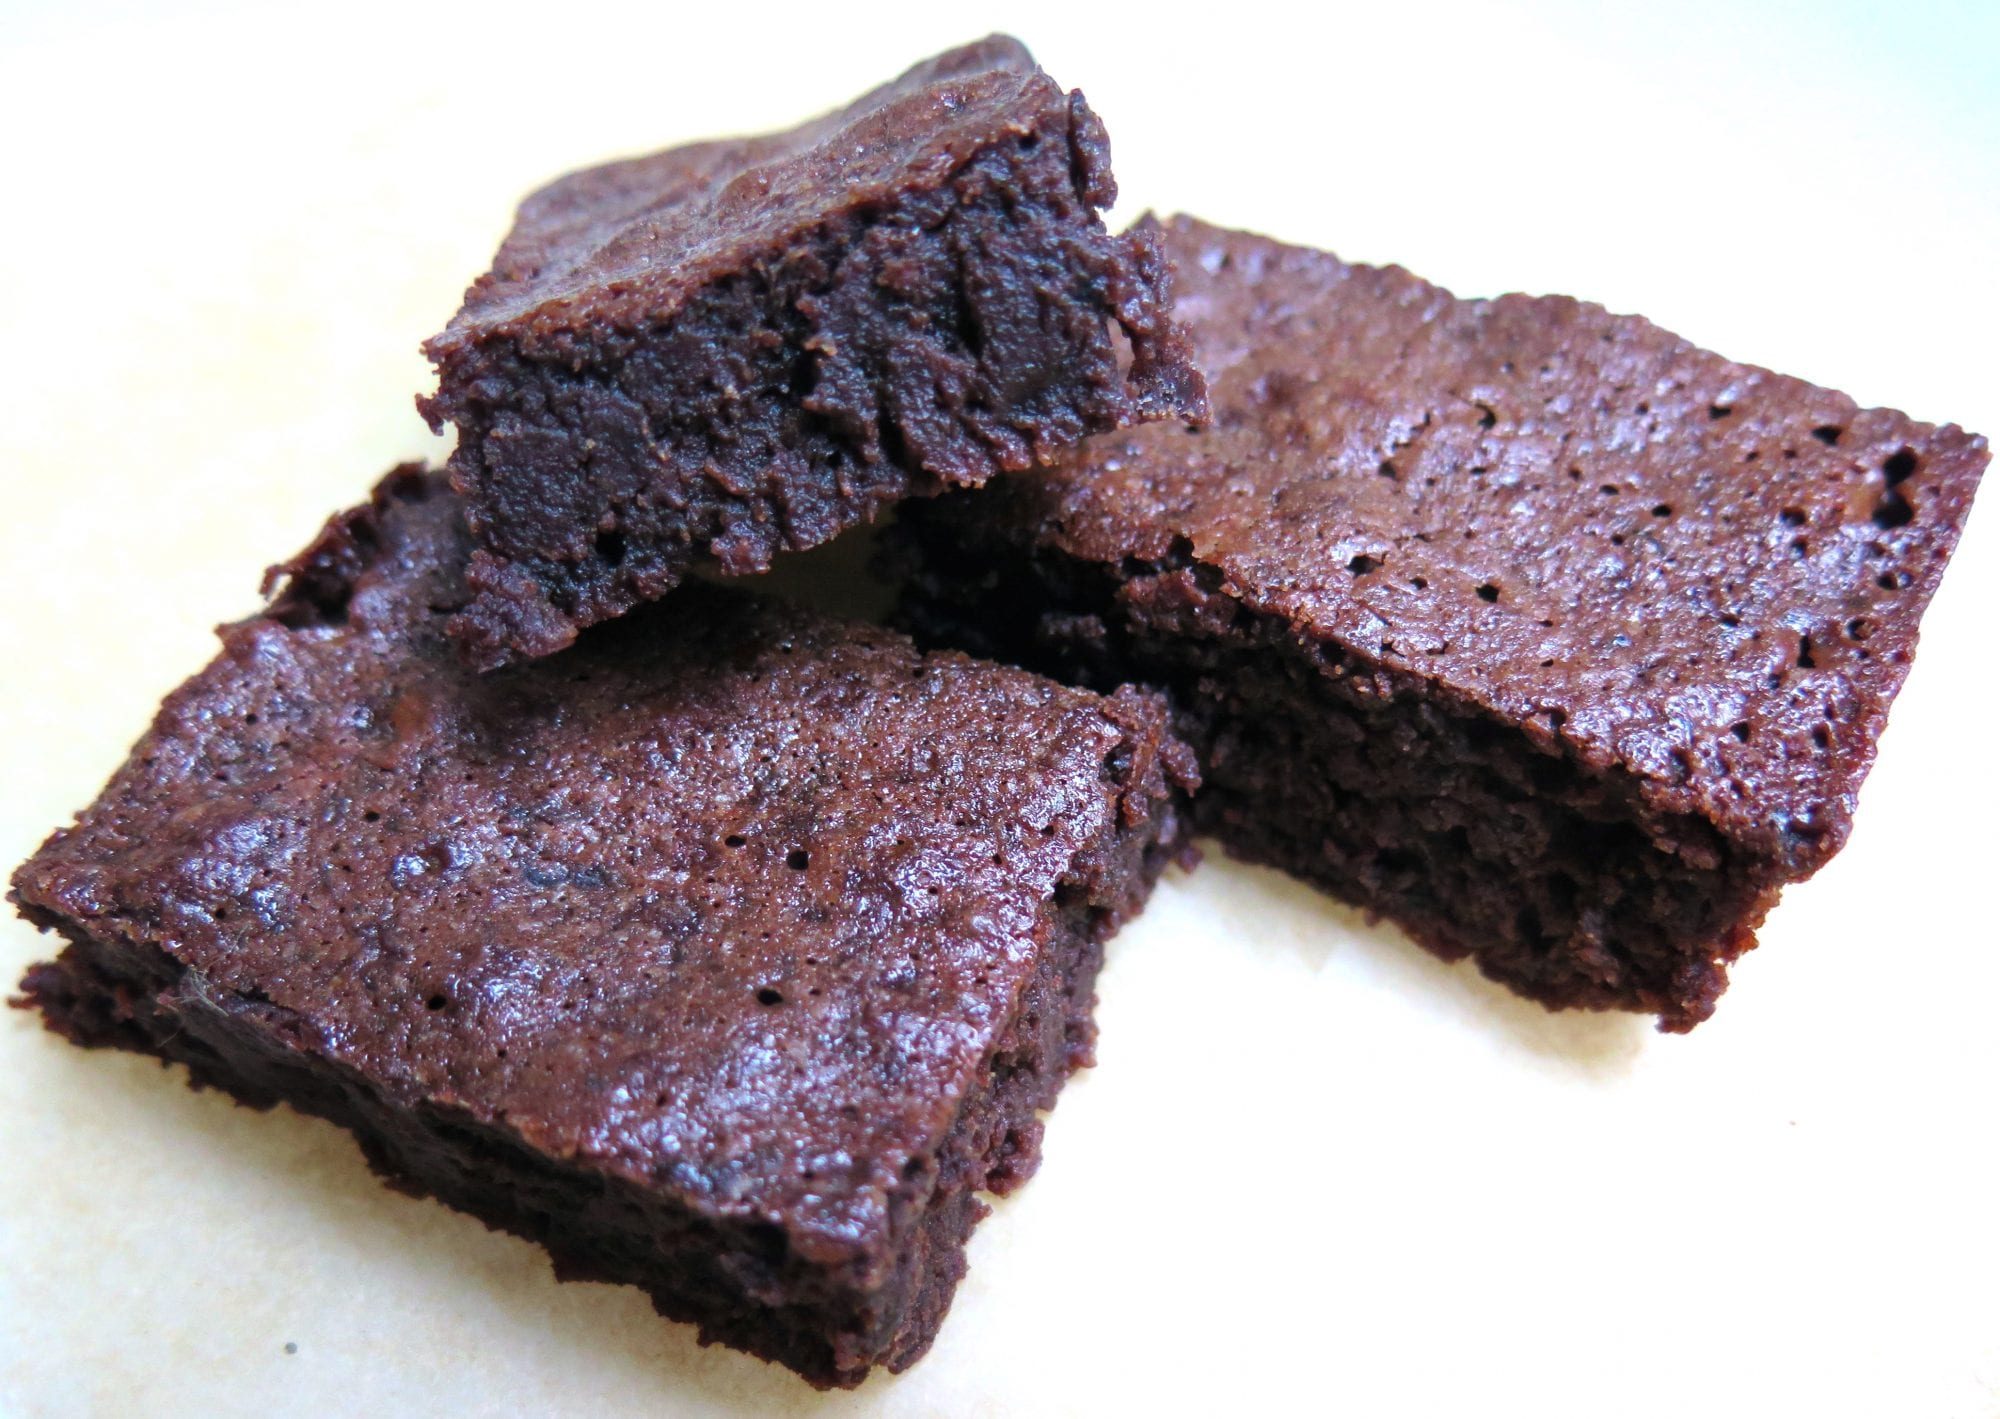 ultimate fudgy/chocolate-y brownies with a touch of black cocoa